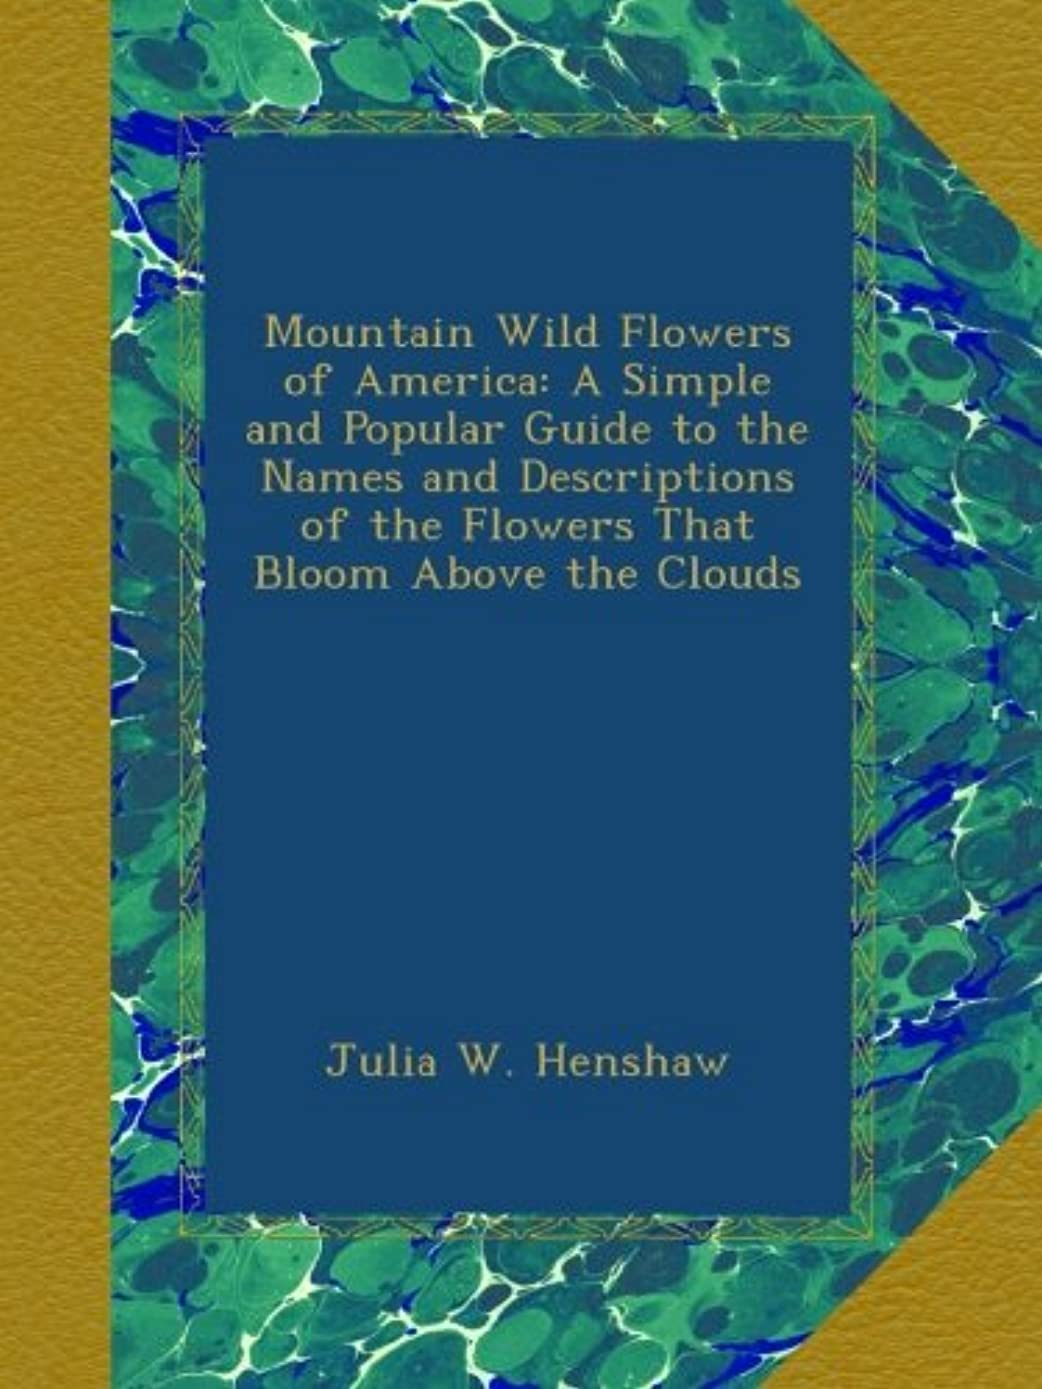 ママ少年カレンダーMountain Wild Flowers of America: A Simple and Popular Guide to the Names and Descriptions of the Flowers That Bloom Above the Clouds